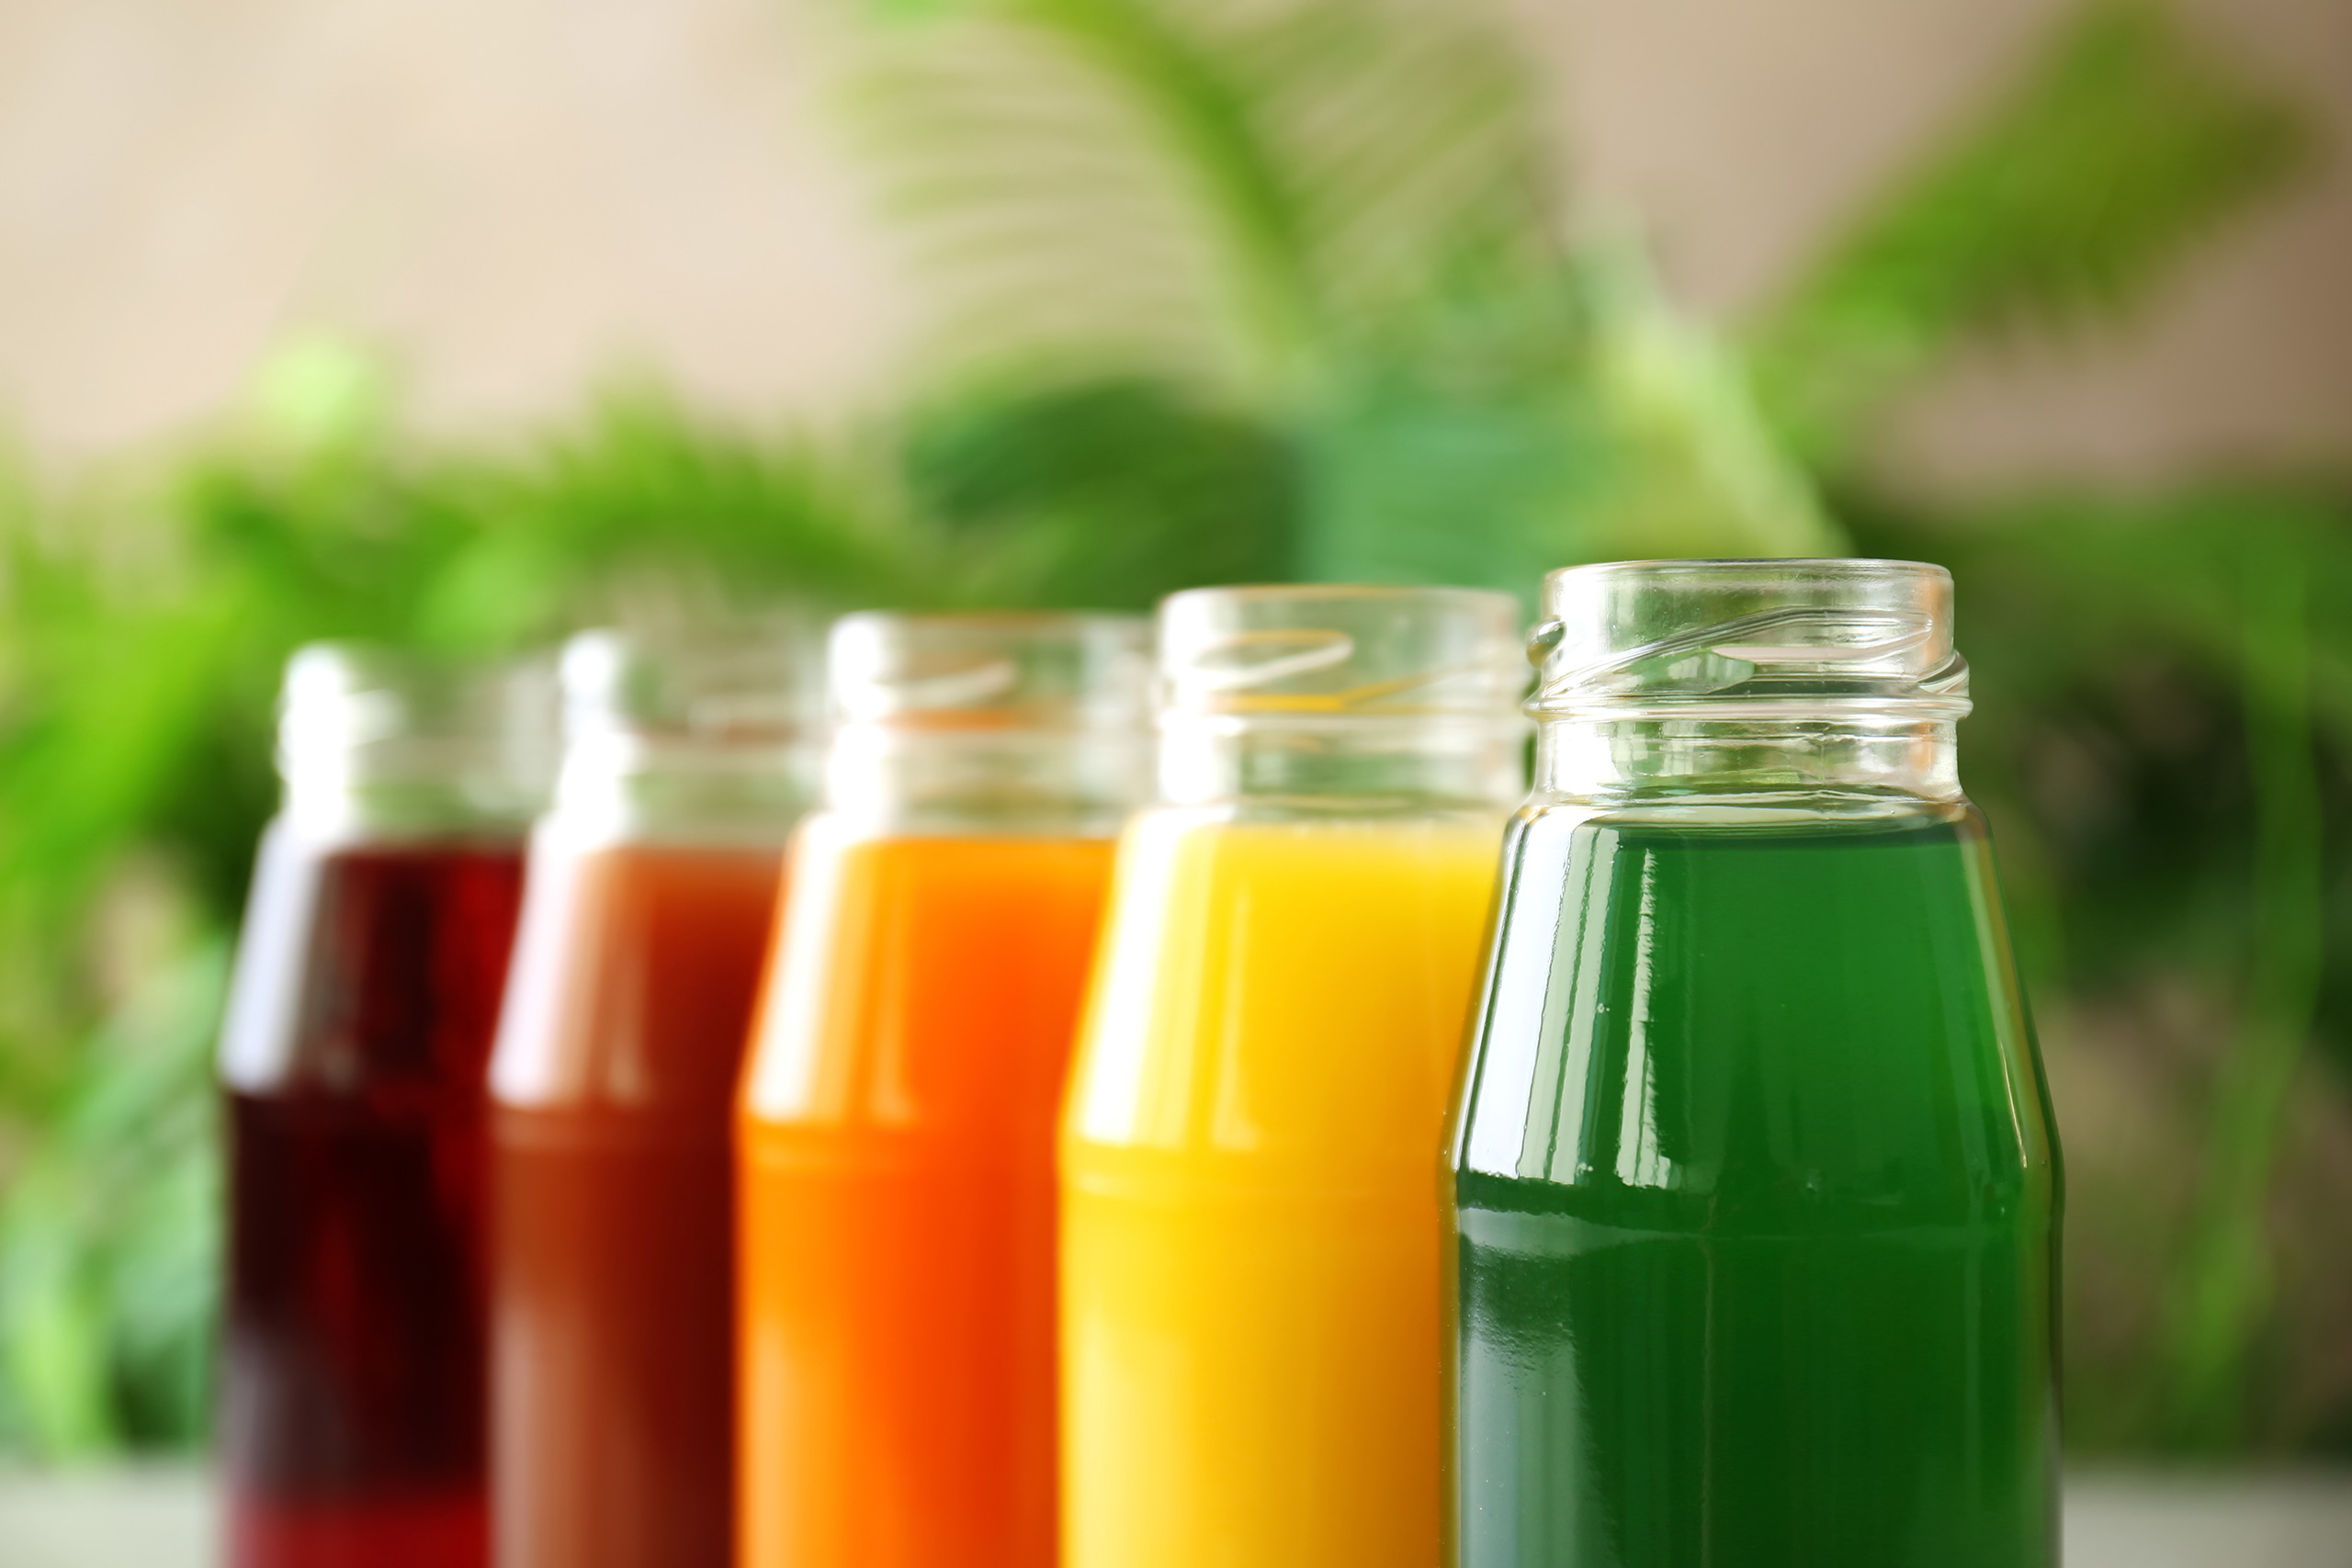 functional beverages market